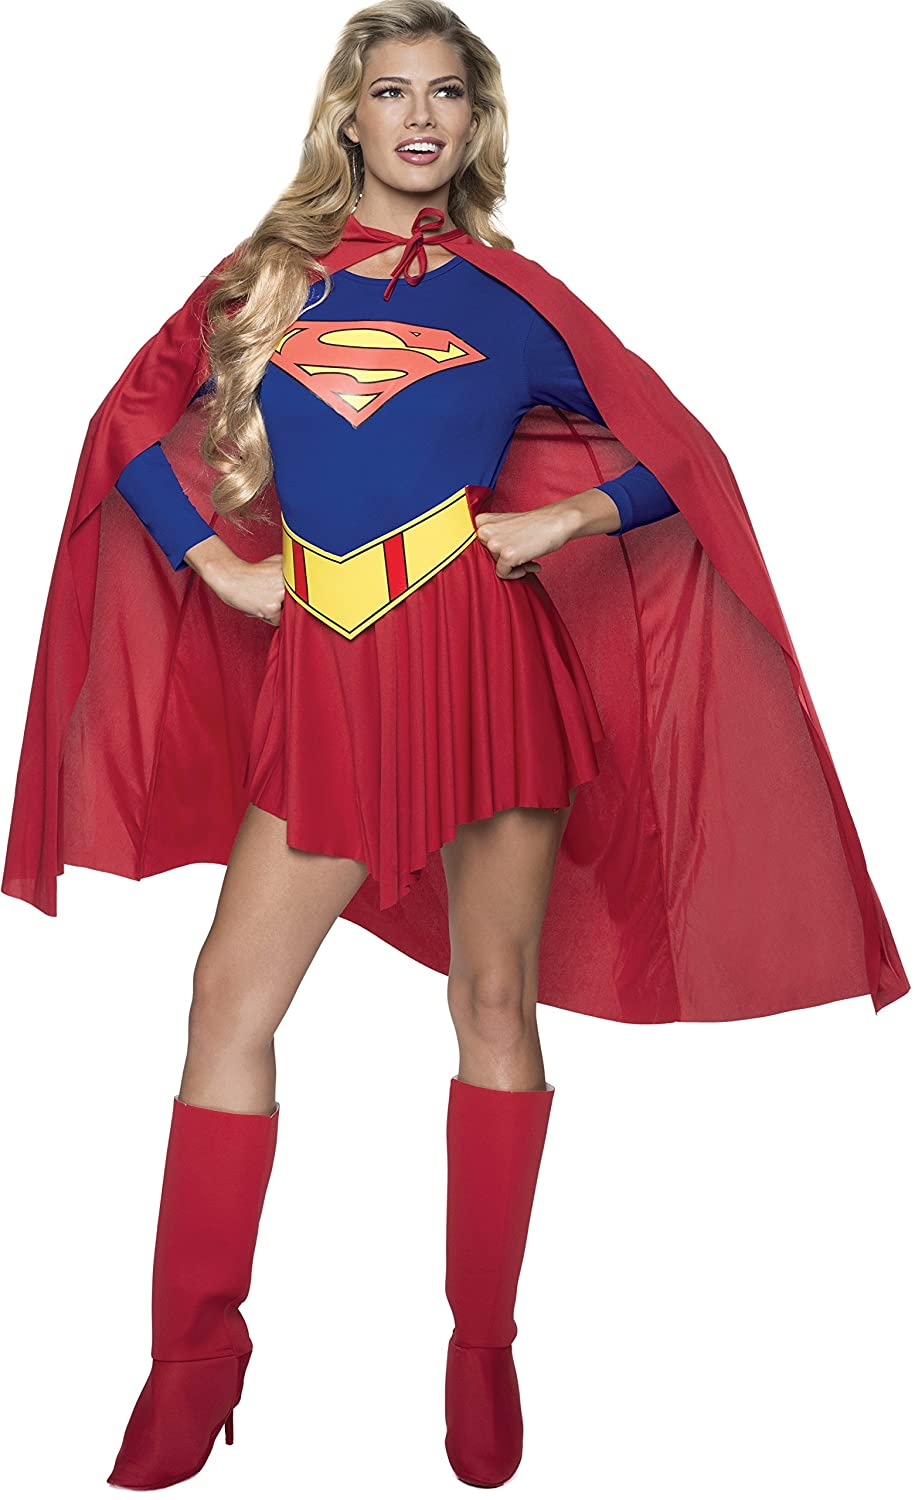 Amazon.com DC Comics Deluxe Supergirl Costume Red/Blue Medium Clothing  sc 1 st  Amazon.com & Amazon.com: DC Comics Deluxe Supergirl Costume Red/Blue Medium ...